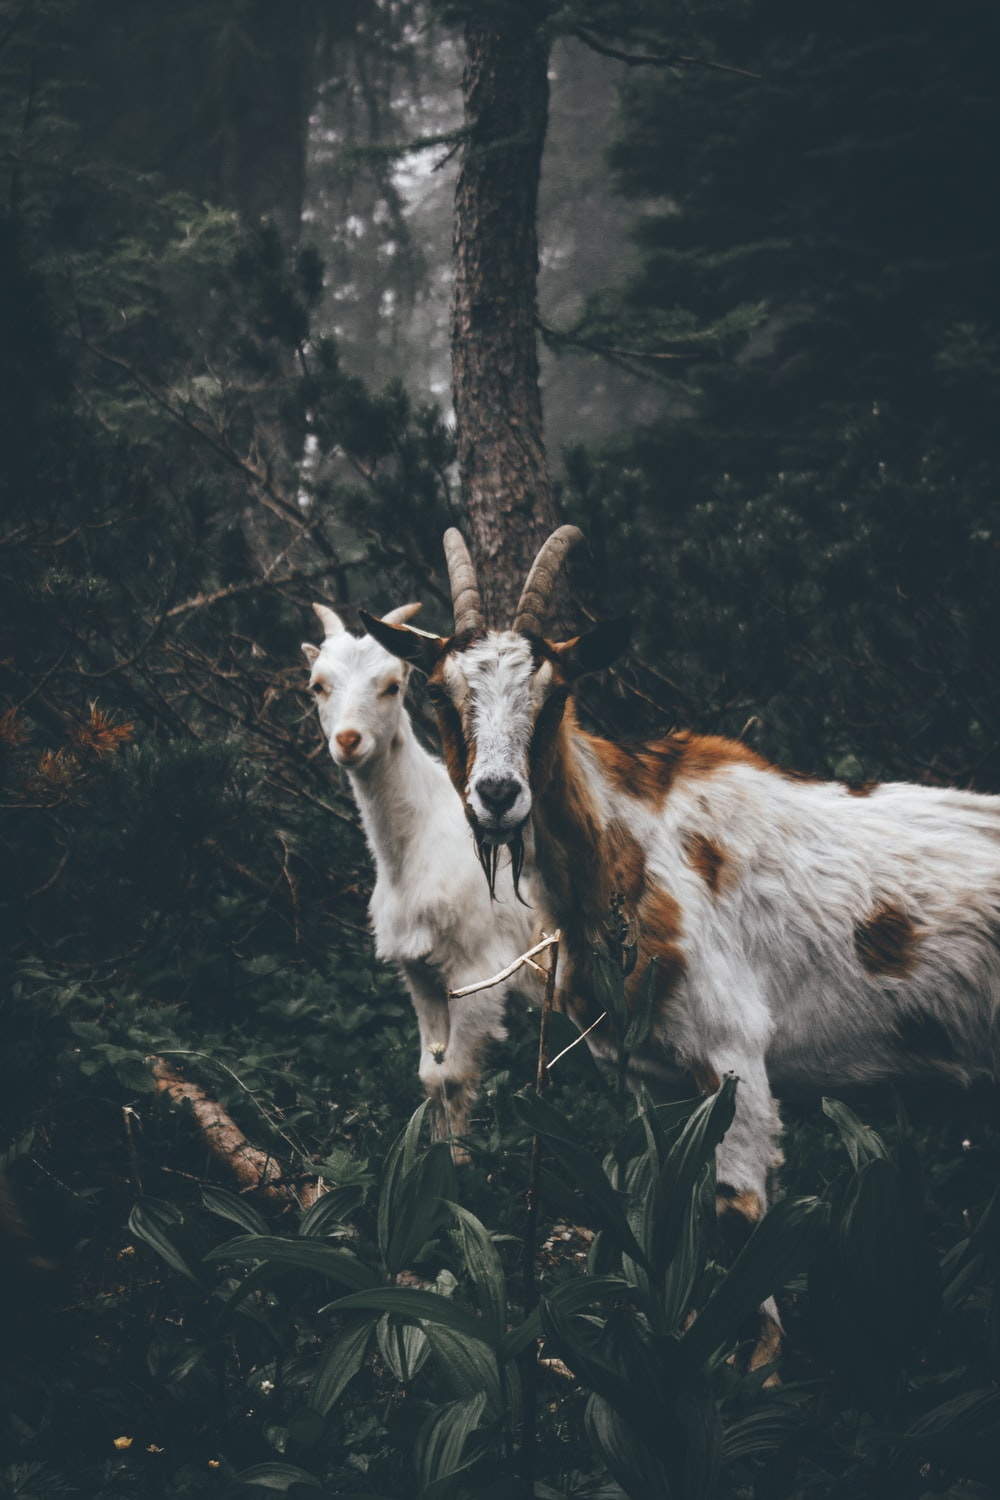 two brown and white goats standing near brown tree during daytime